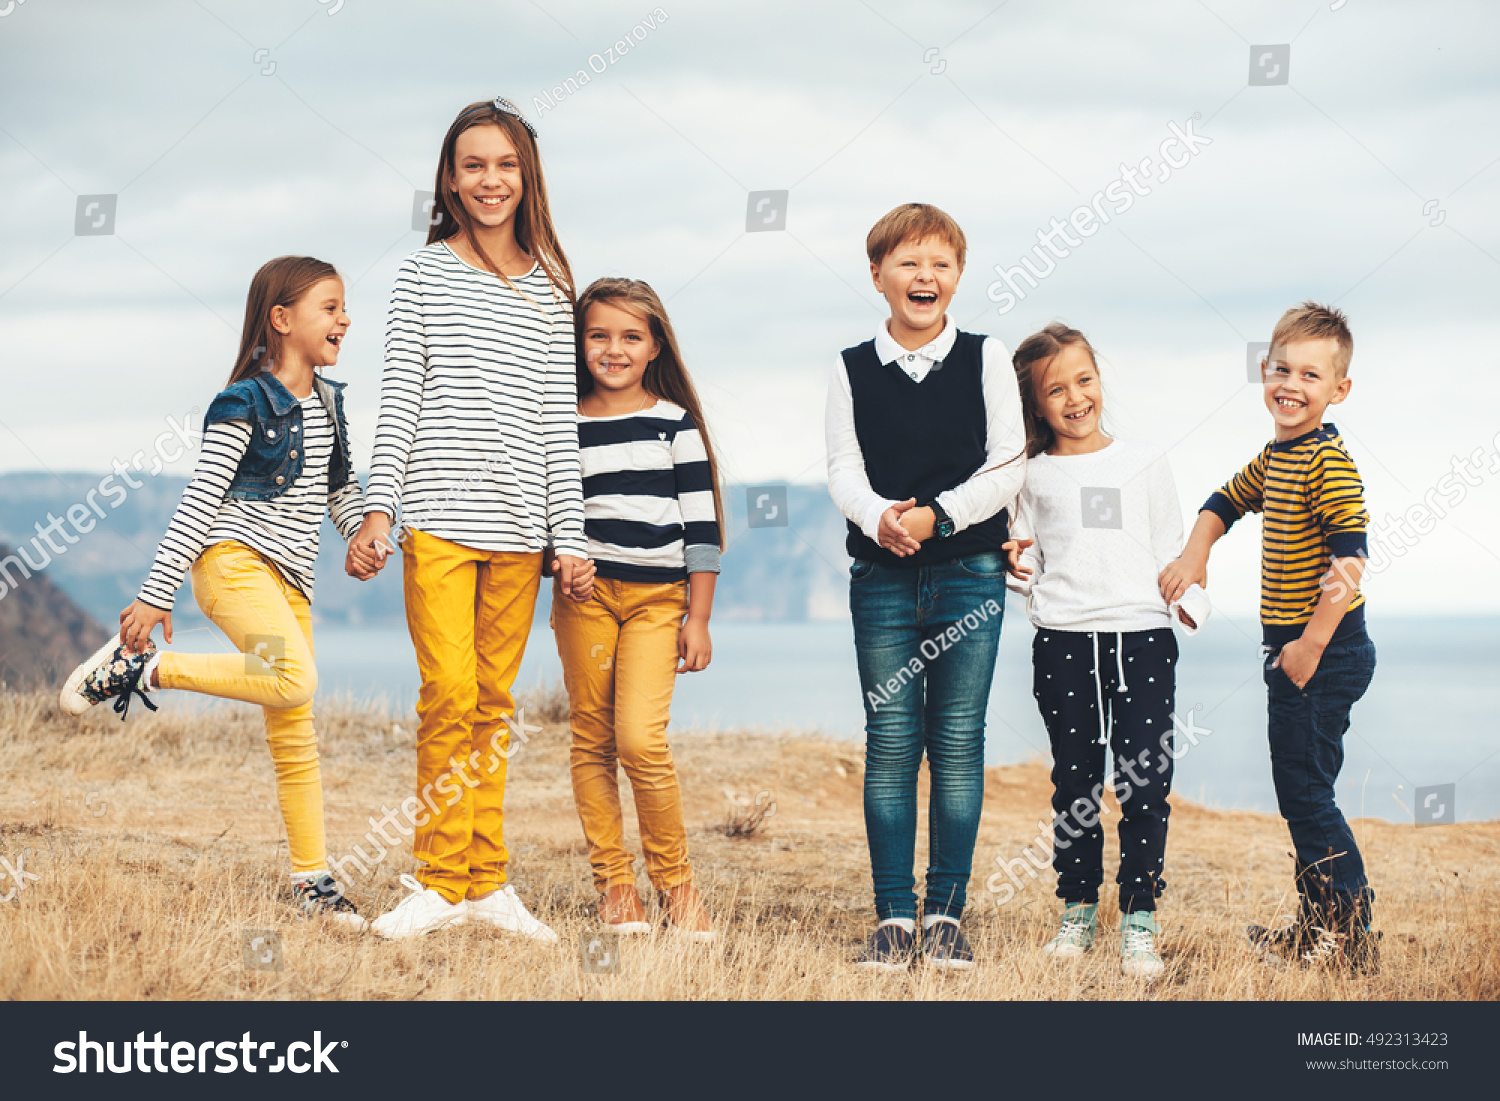 Group fashion children wearing same style stock photo 492313423 shutterstock Fashion style group mauritius